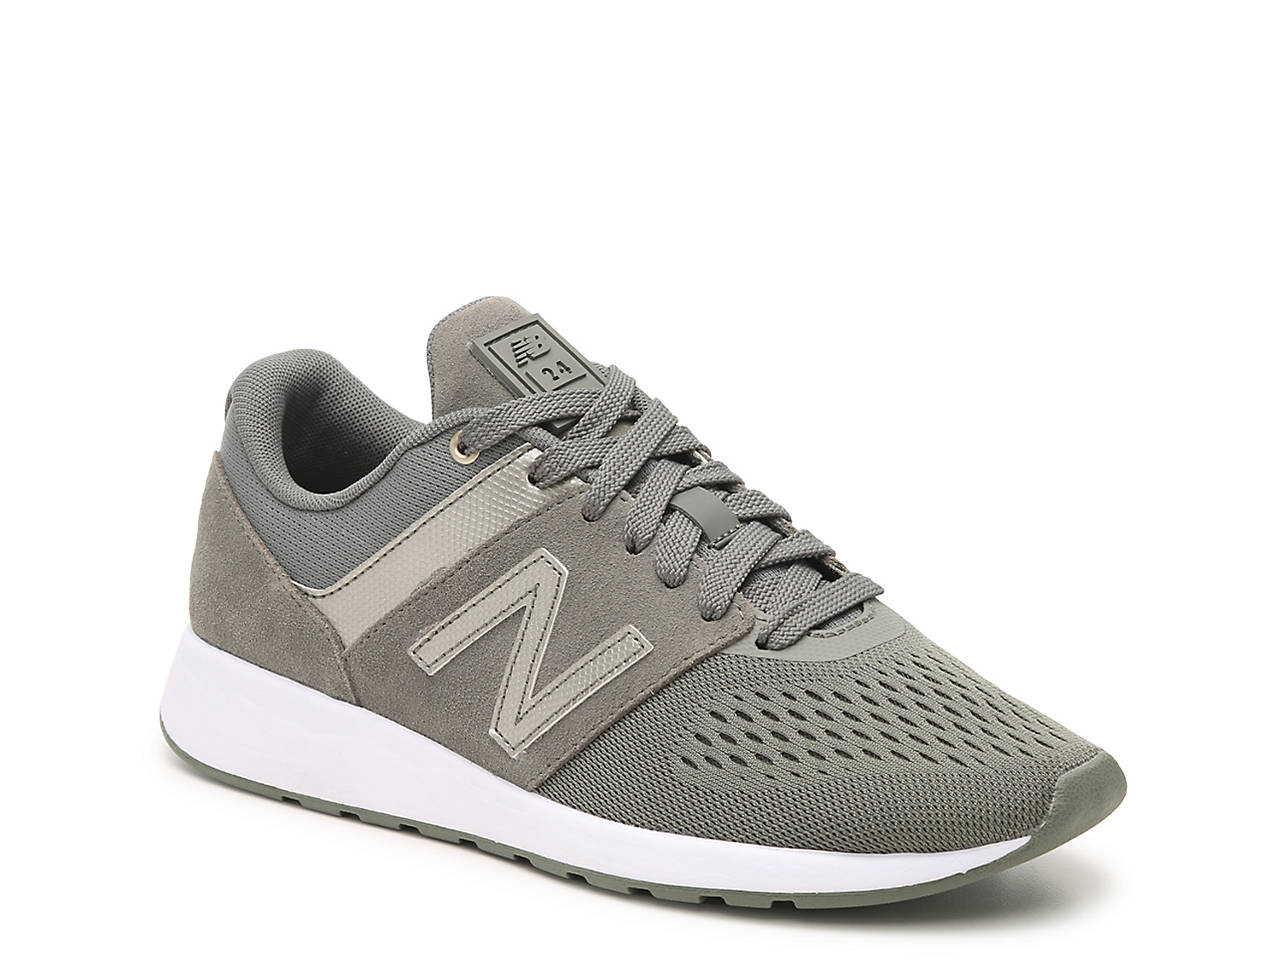 be0a0593ae2 New Balance 24 Sneaker - Women s Women s Shoes